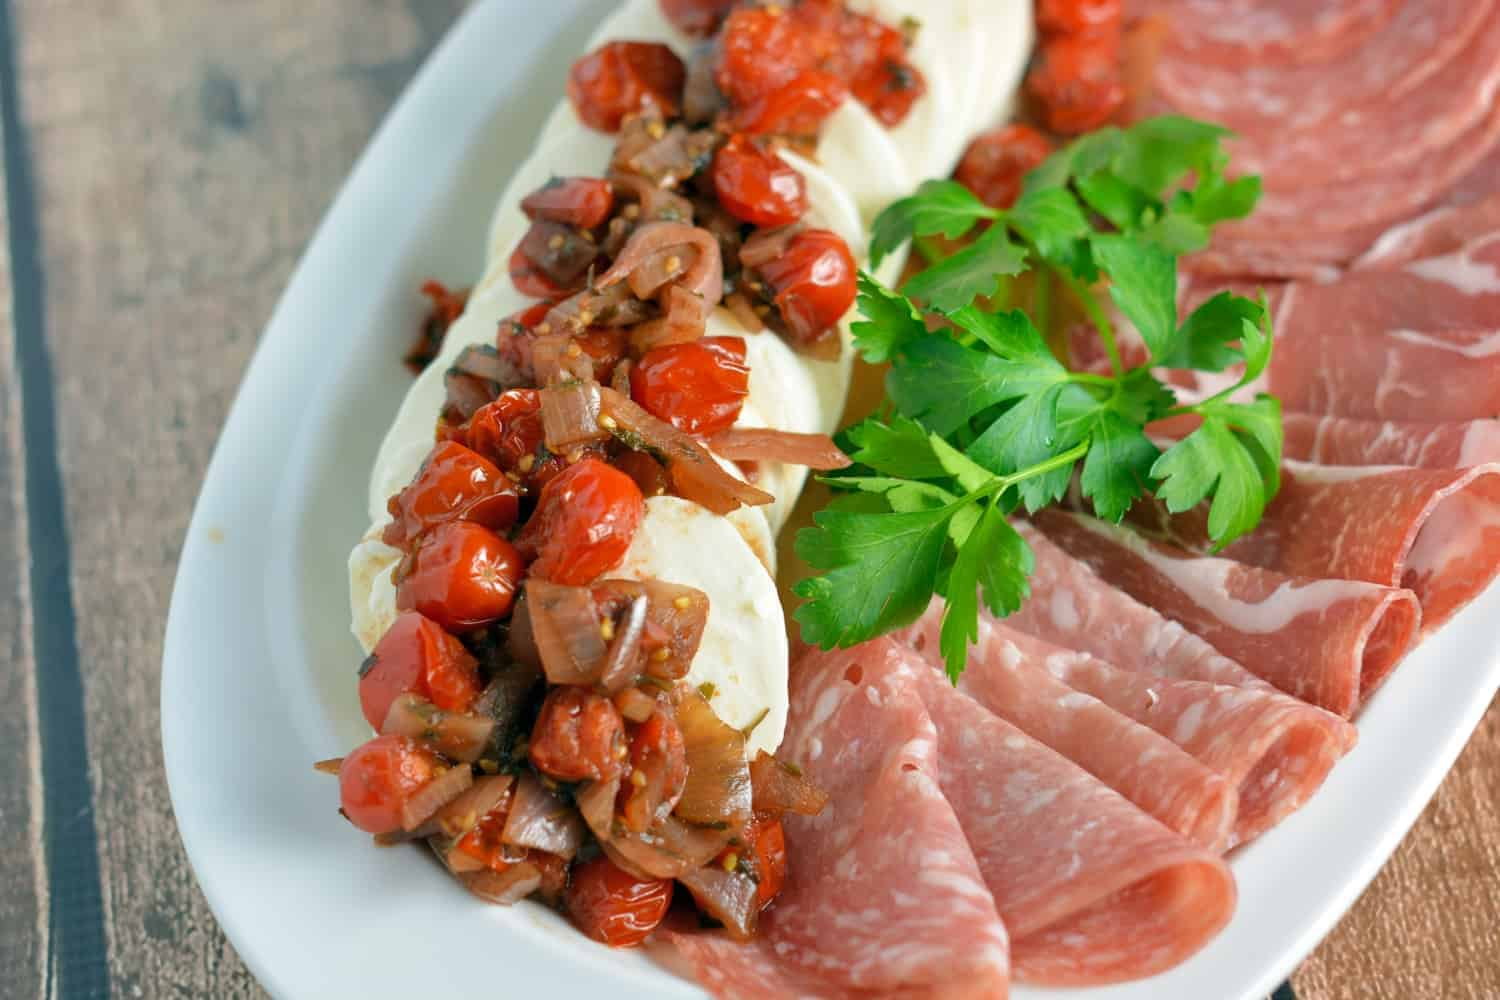 Warm Tomato and Shallot Mozzarella Cheese Recipe- Grape tomatoes and shallots simmered in a sweet balsamic sauce over soft mozzarella cheese. It only takes 6 ingredients and 20 minutes!